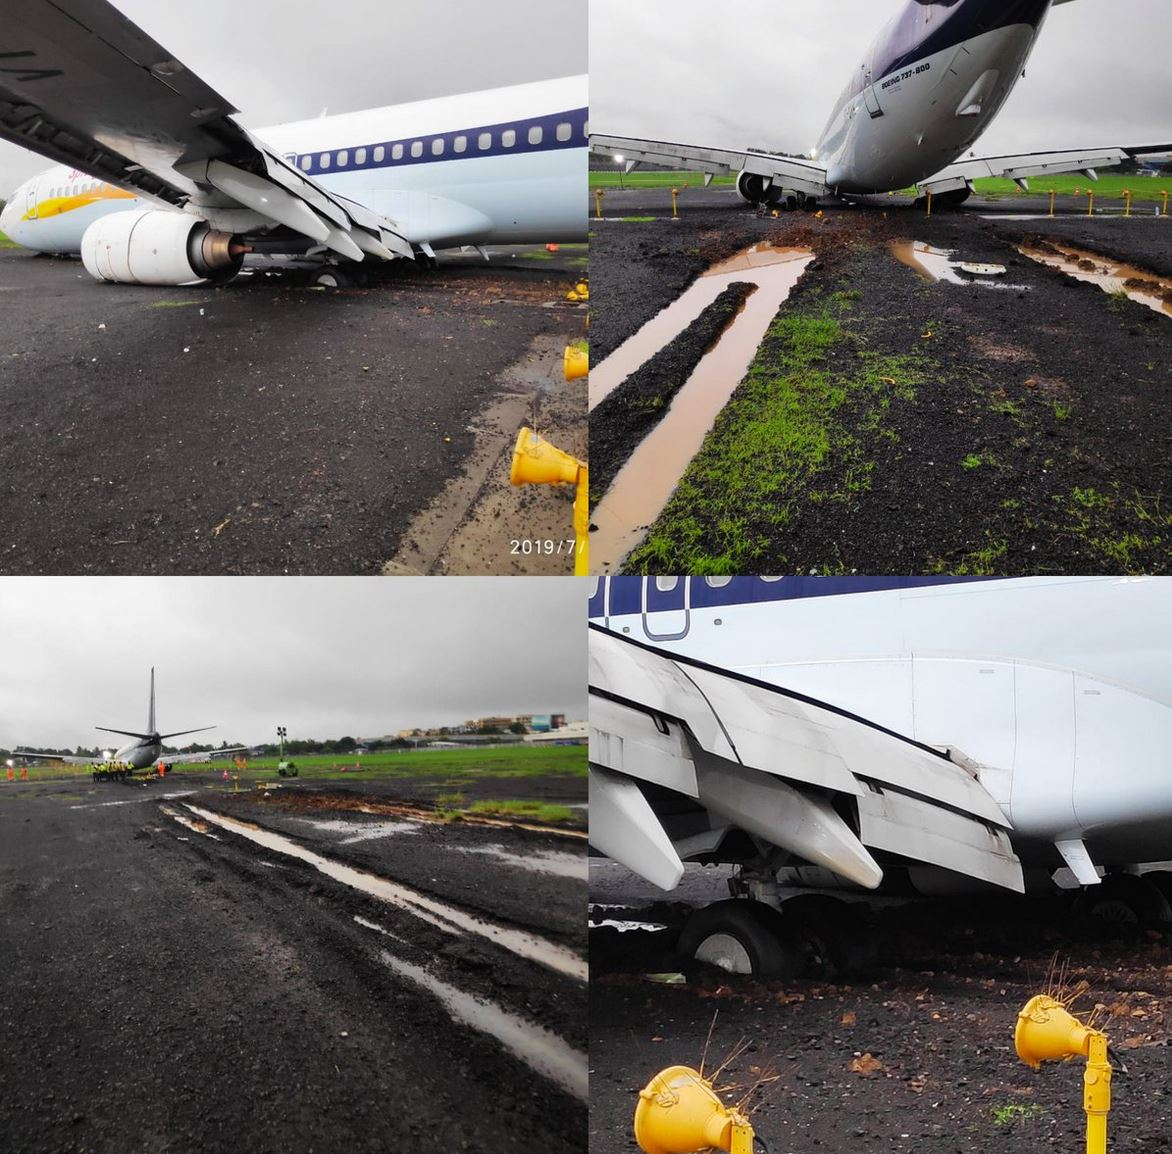 SpiceJet 737 suffers runway excursion in rainy Mum